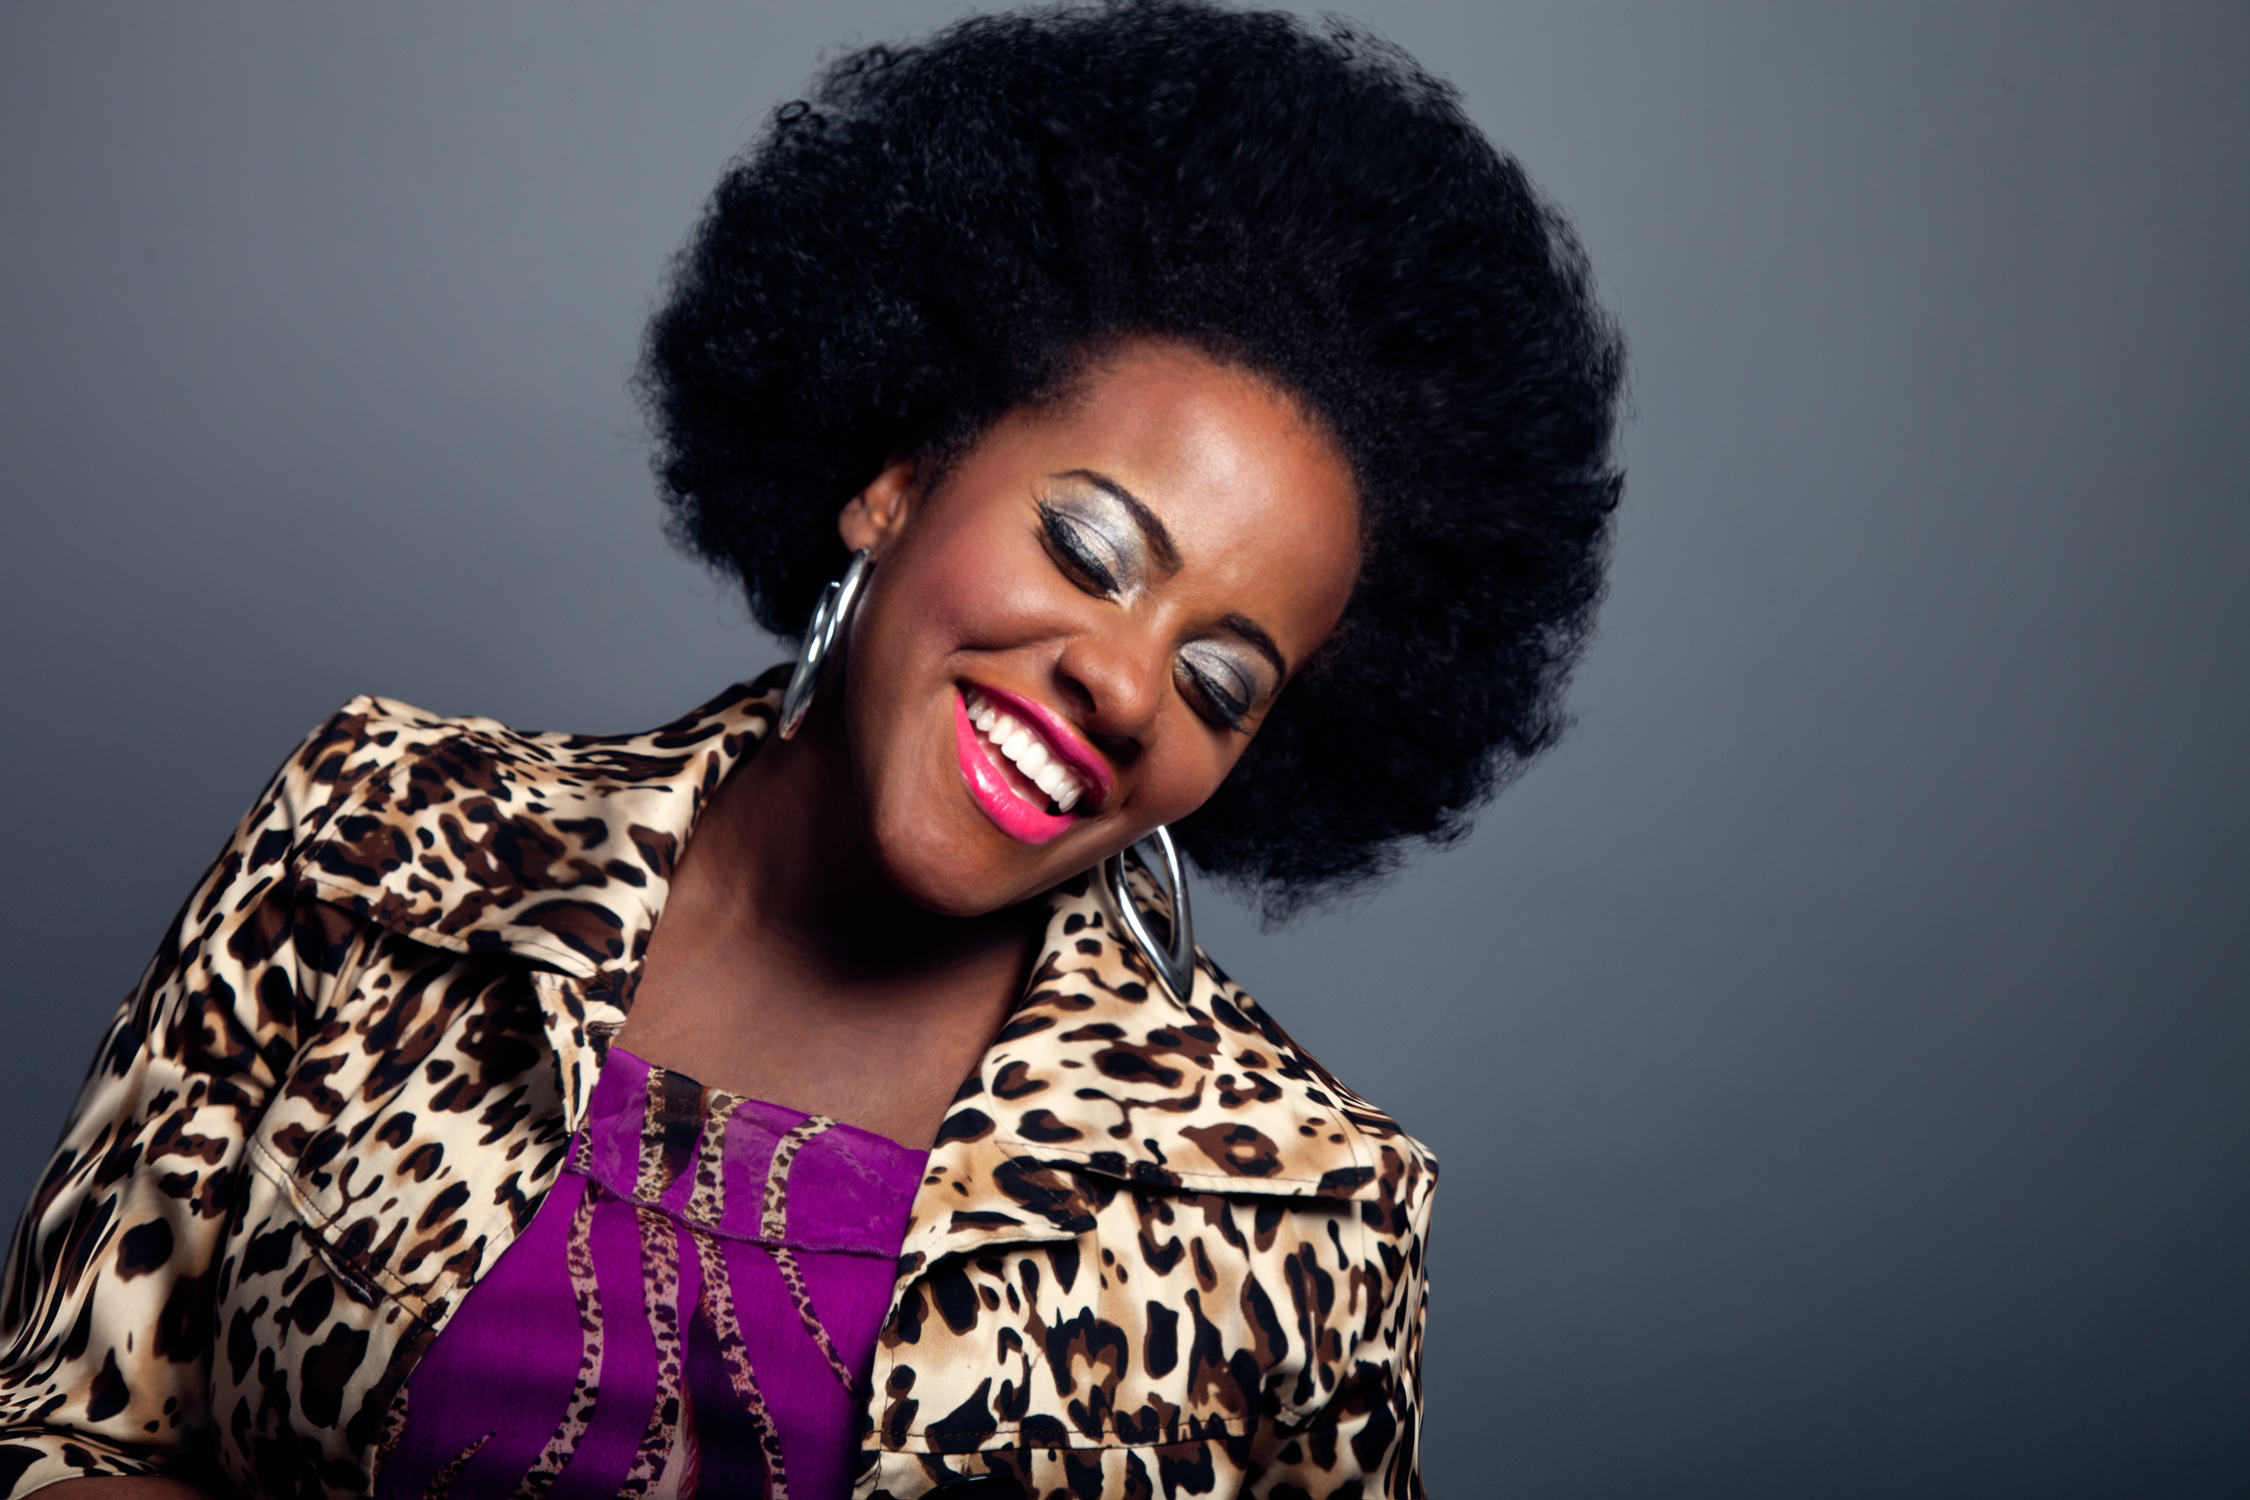 Etana begins her U.S. Tour In March.